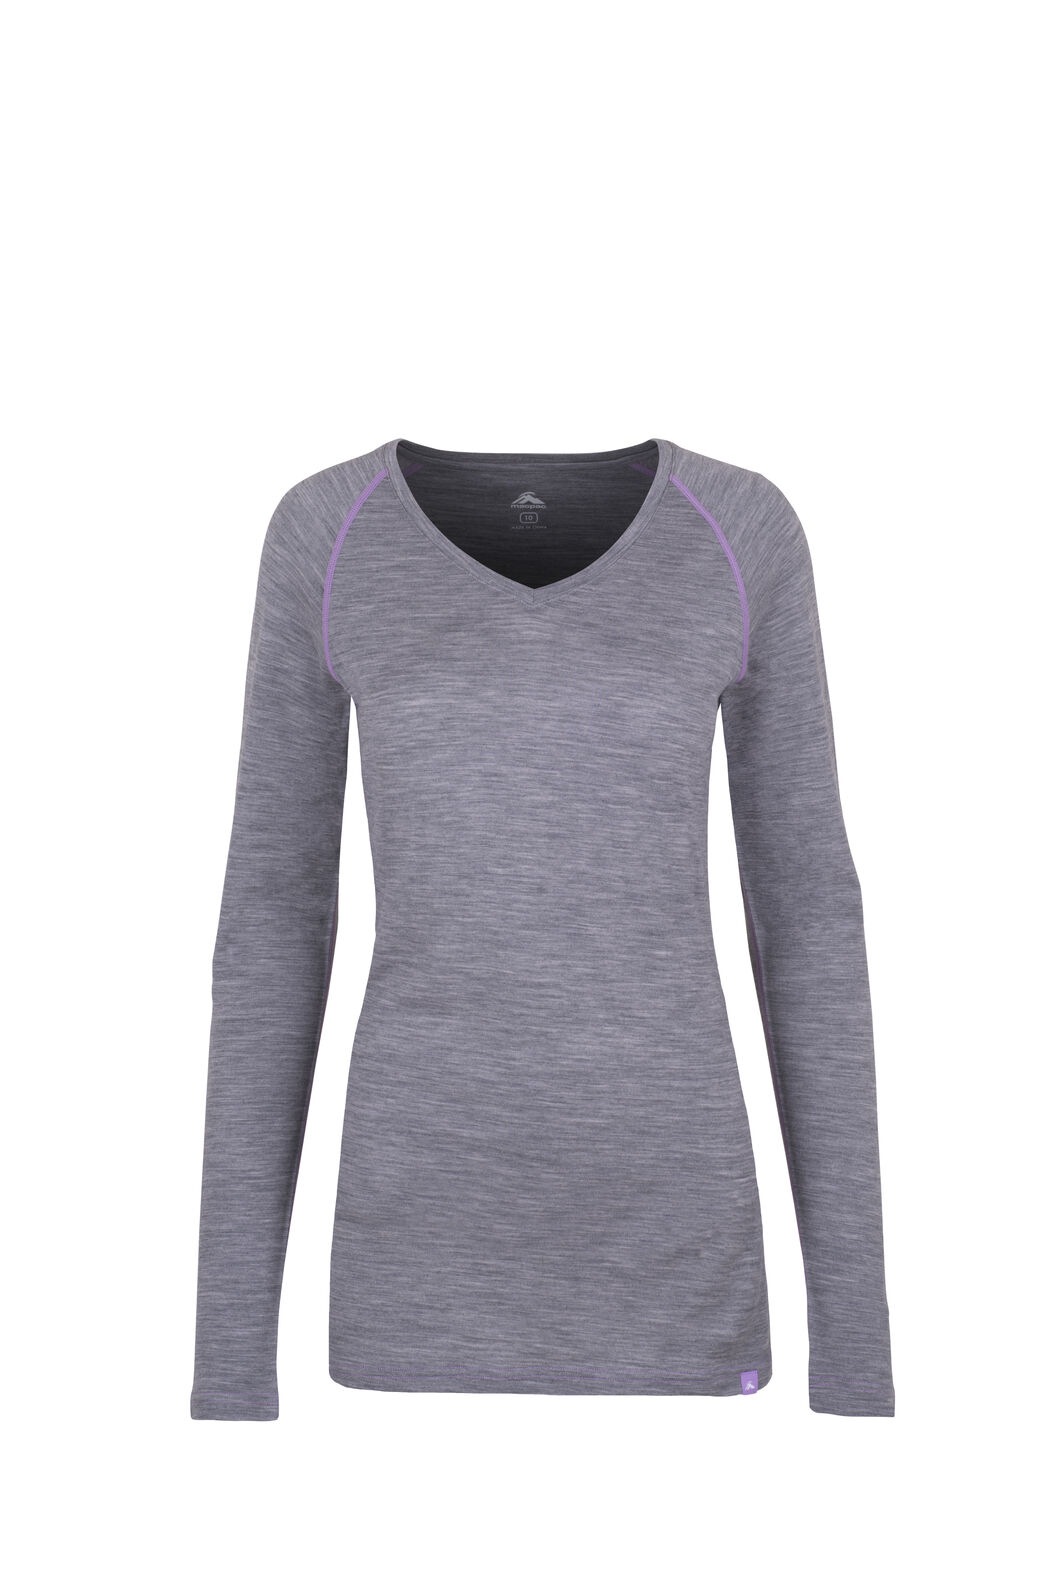 Macpac 150 Merino V-Neck Top — Women's, Grey Marle/Lavender, hi-res